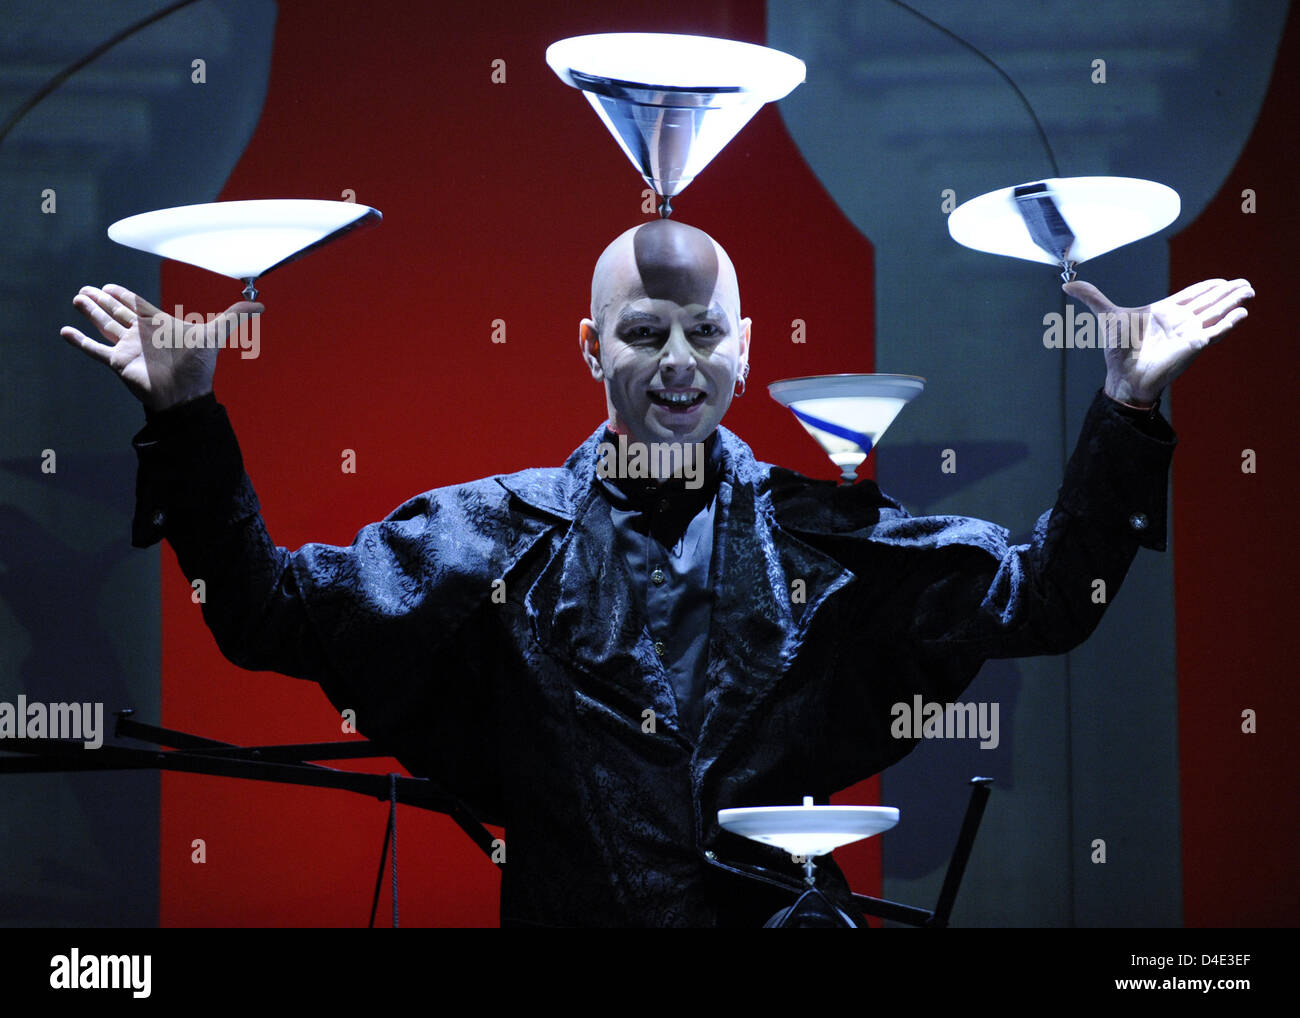 German juggler Jochen Schell poses during a photo call on the vaudeville show 'Orientalis' in Berlin, Germany, - Stock Image